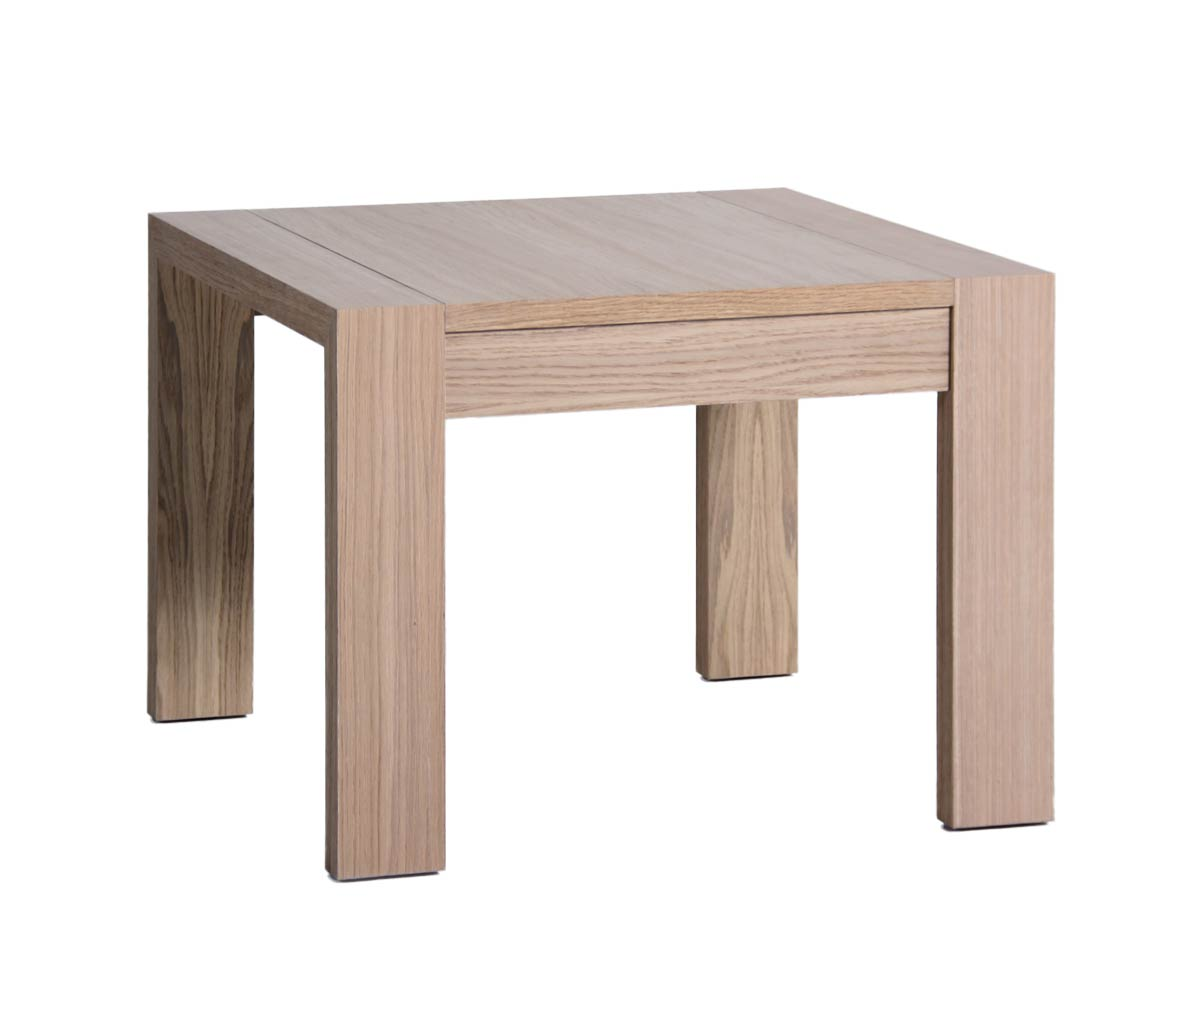 Table Basse Carrée Design Table Basse Carrée Chêne Design Mighty 5842